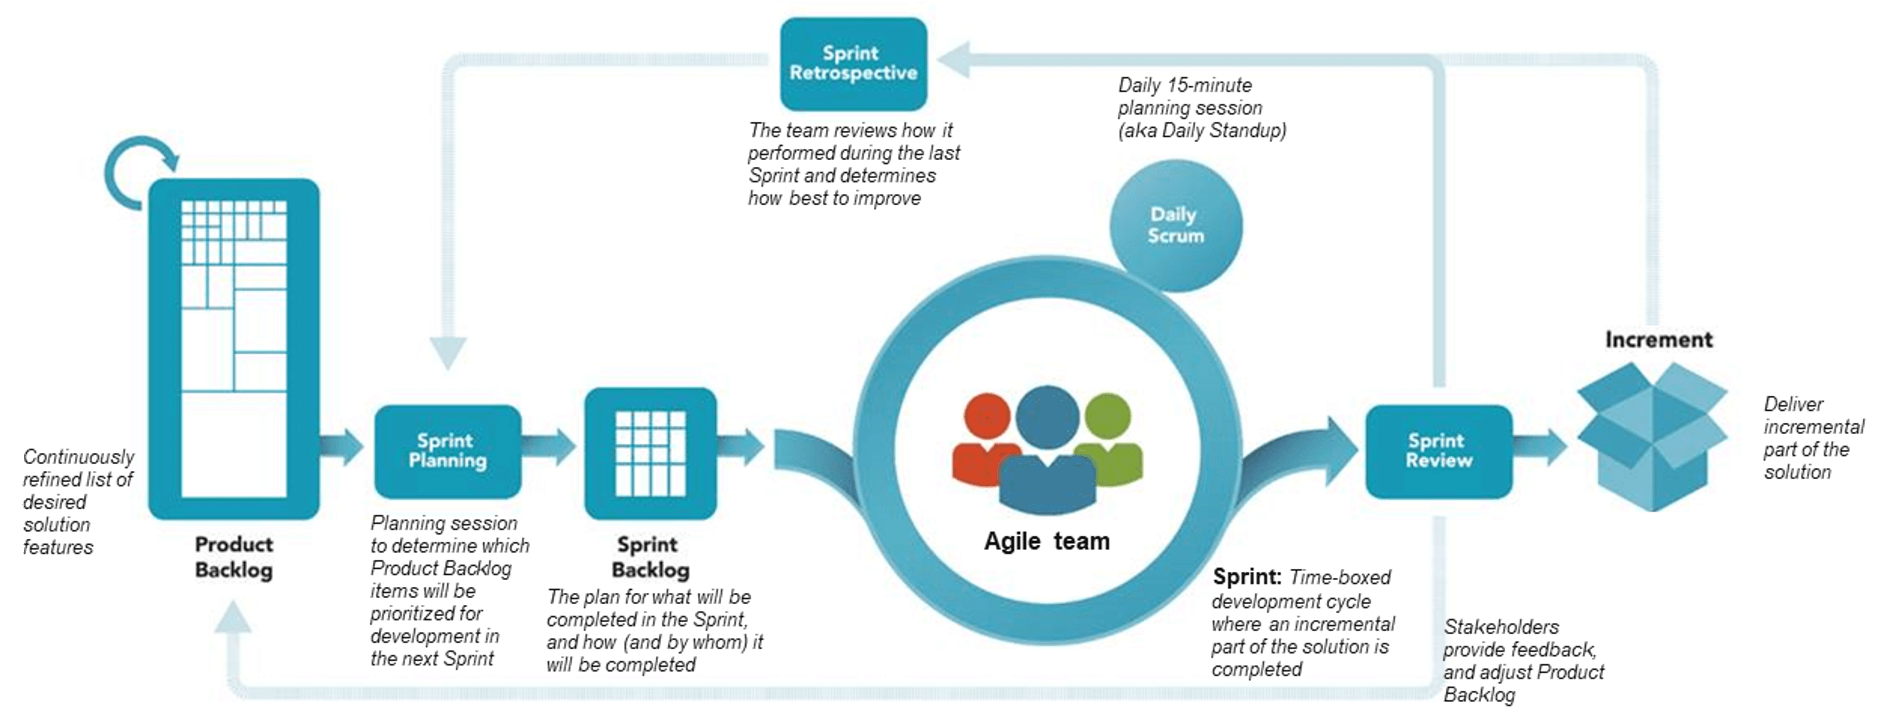 agile delivery approach